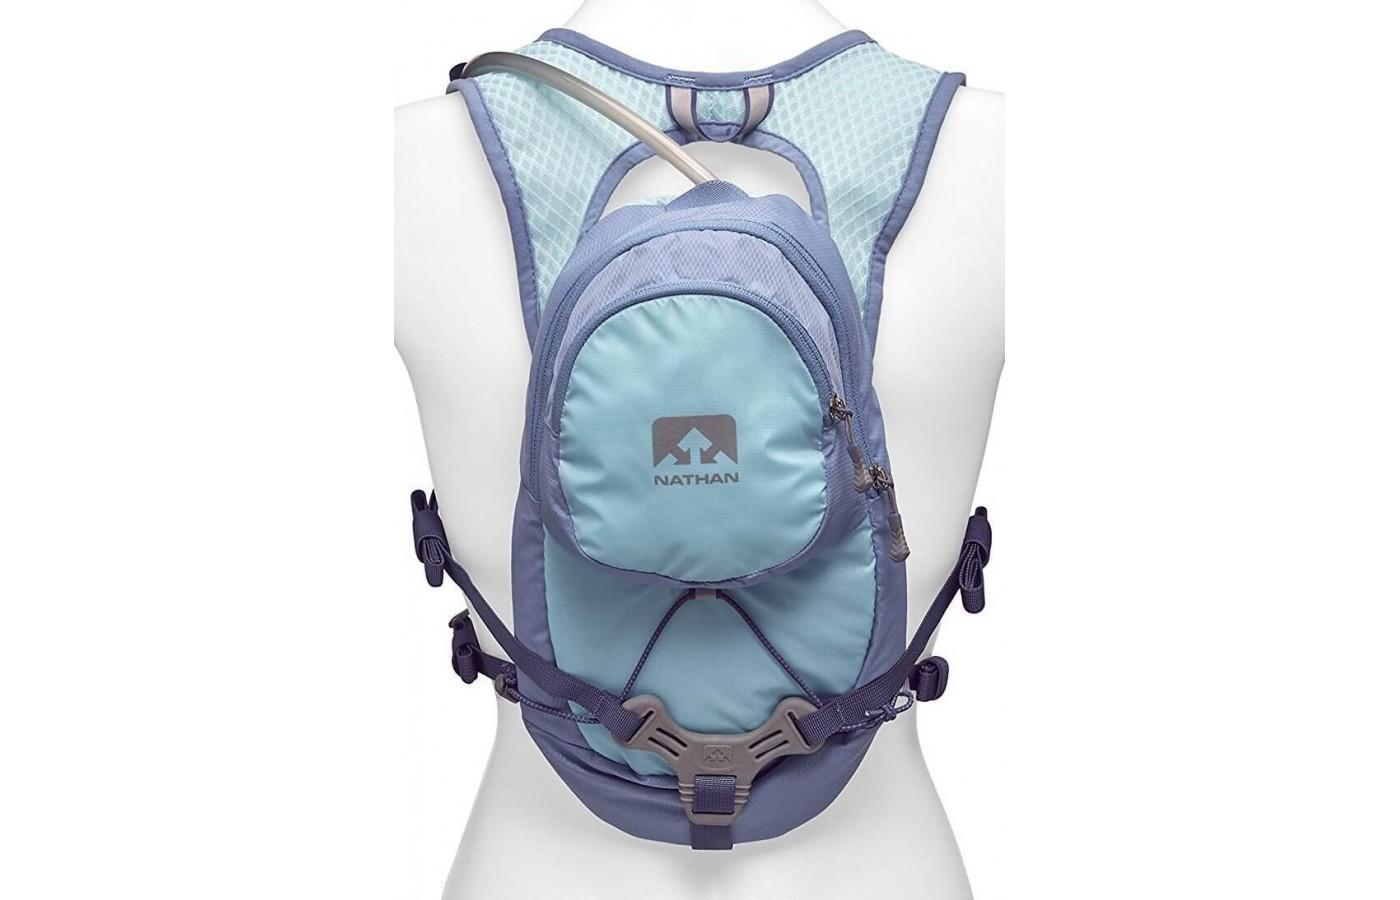 The nathan hydration vest holds 2 liter of fluid.